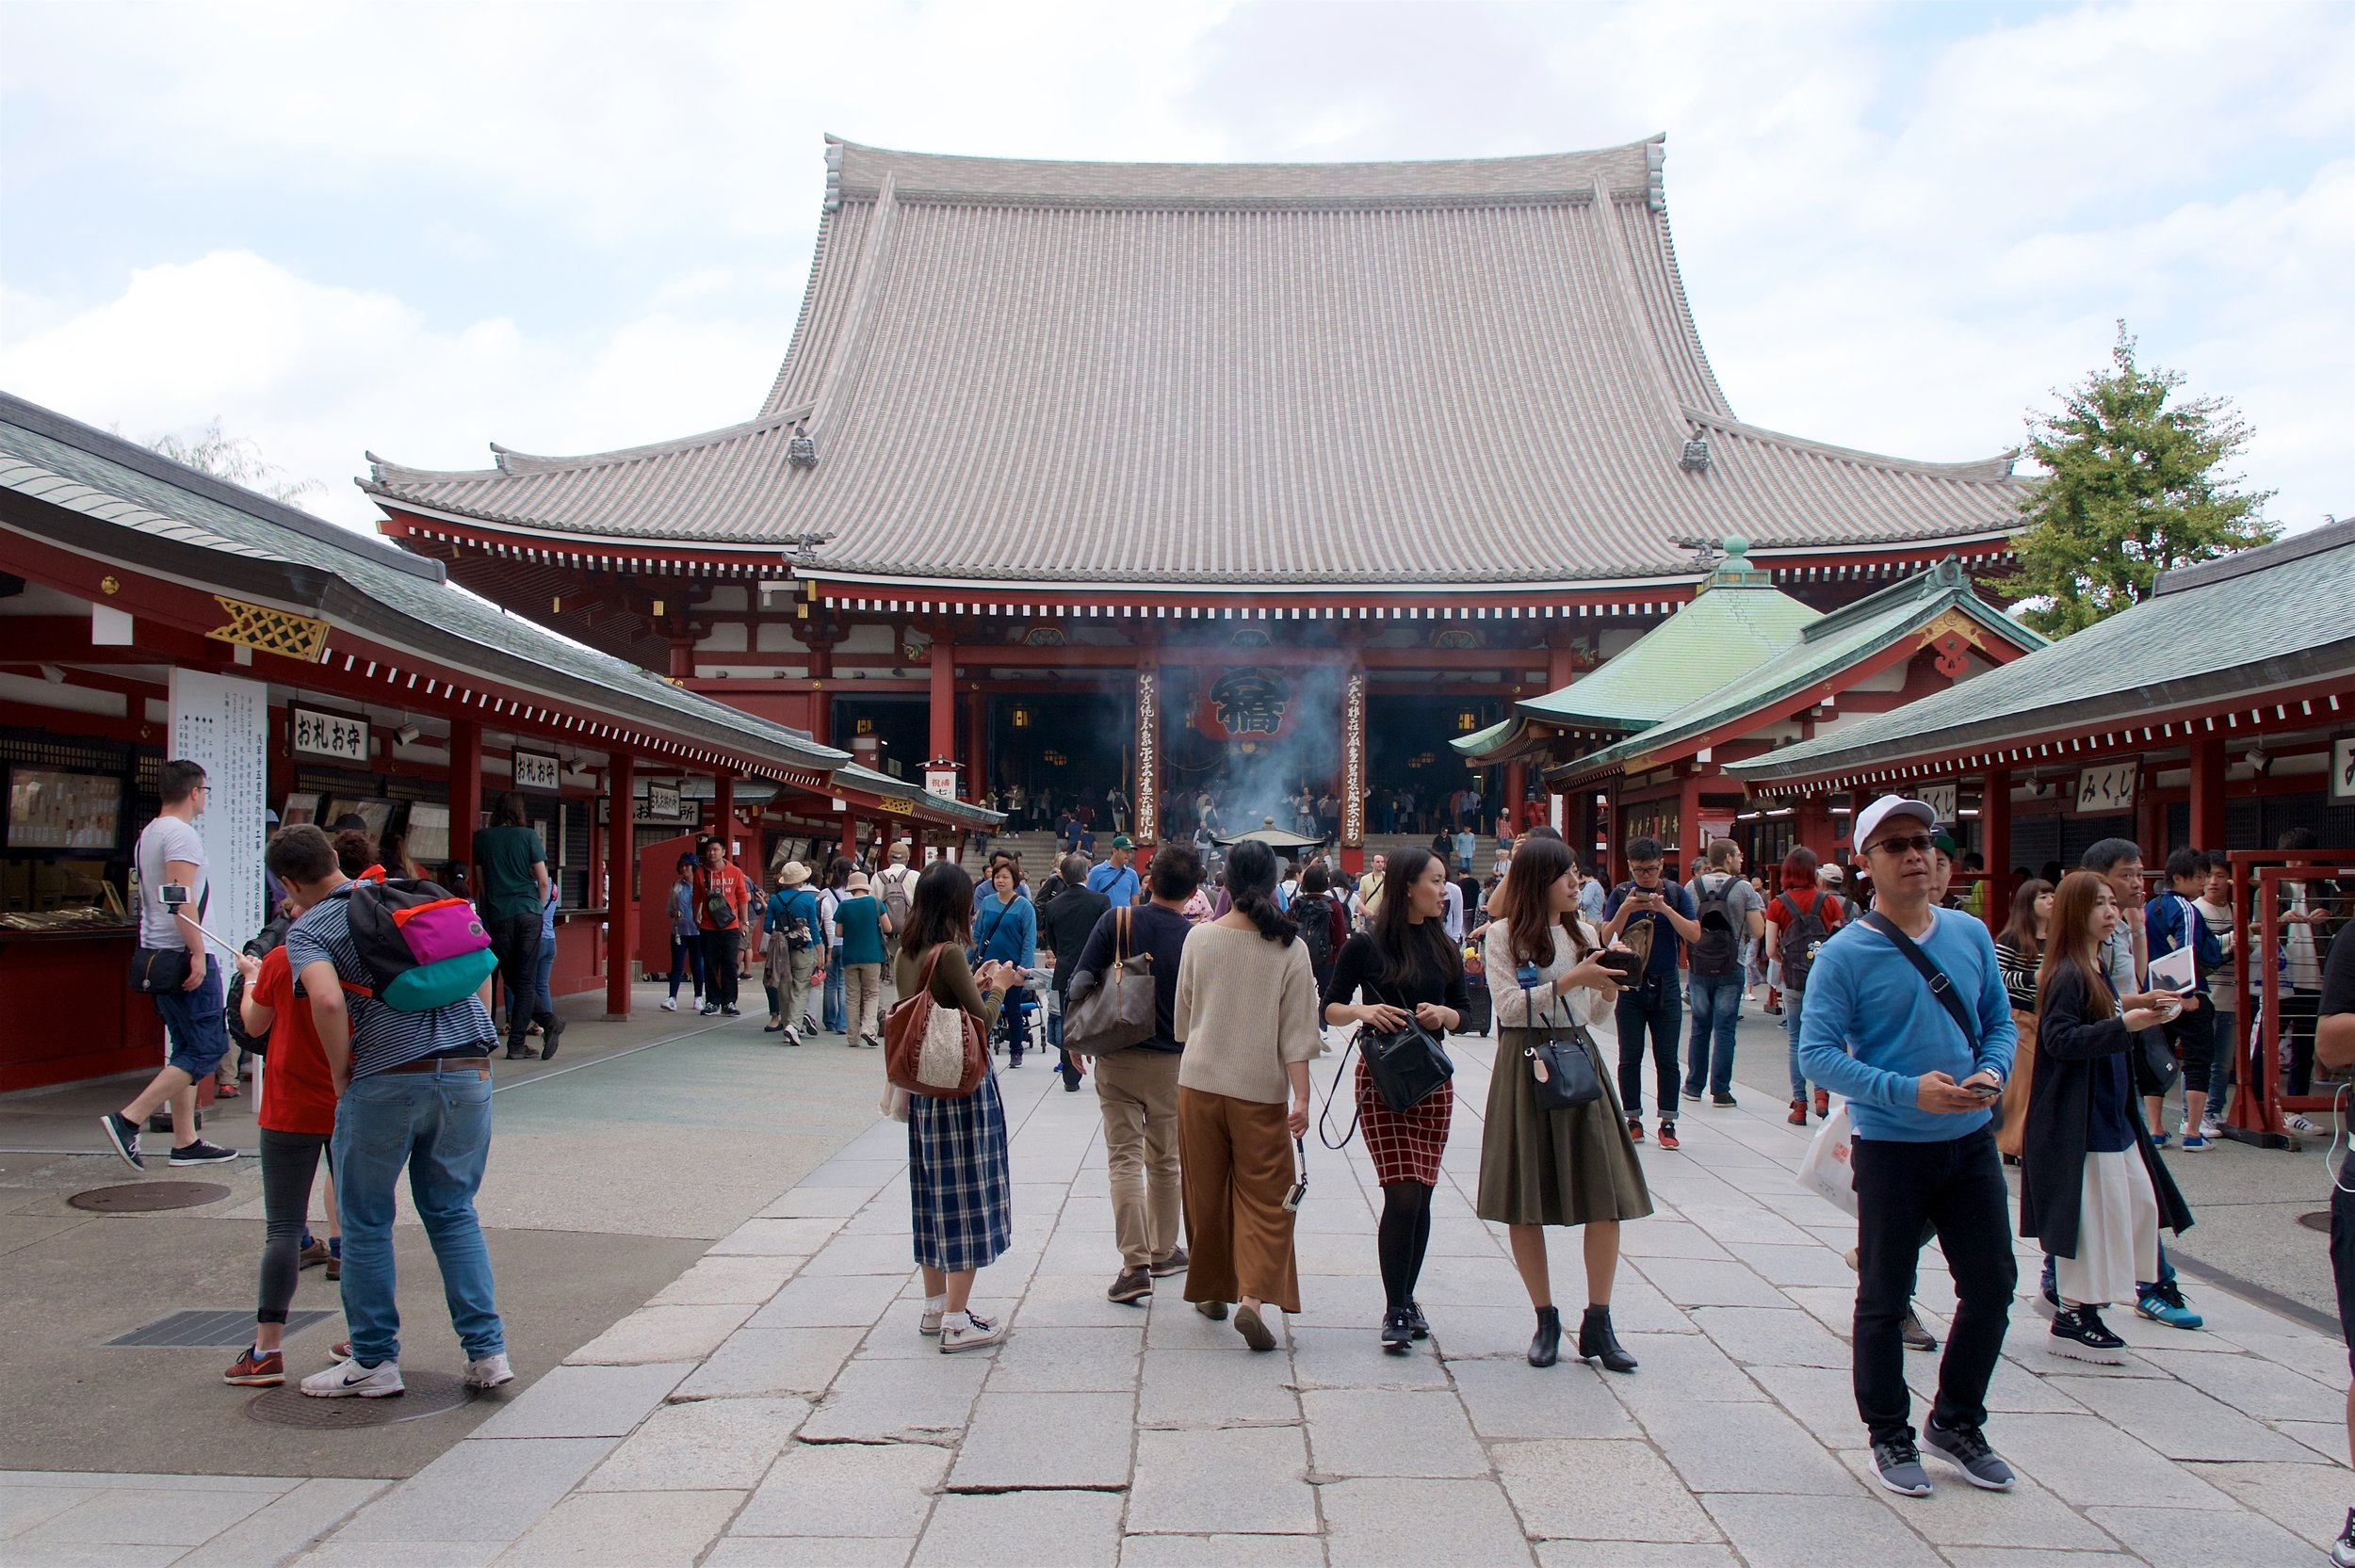 Sensoji Temple and incense burner with wishing stations on the sides